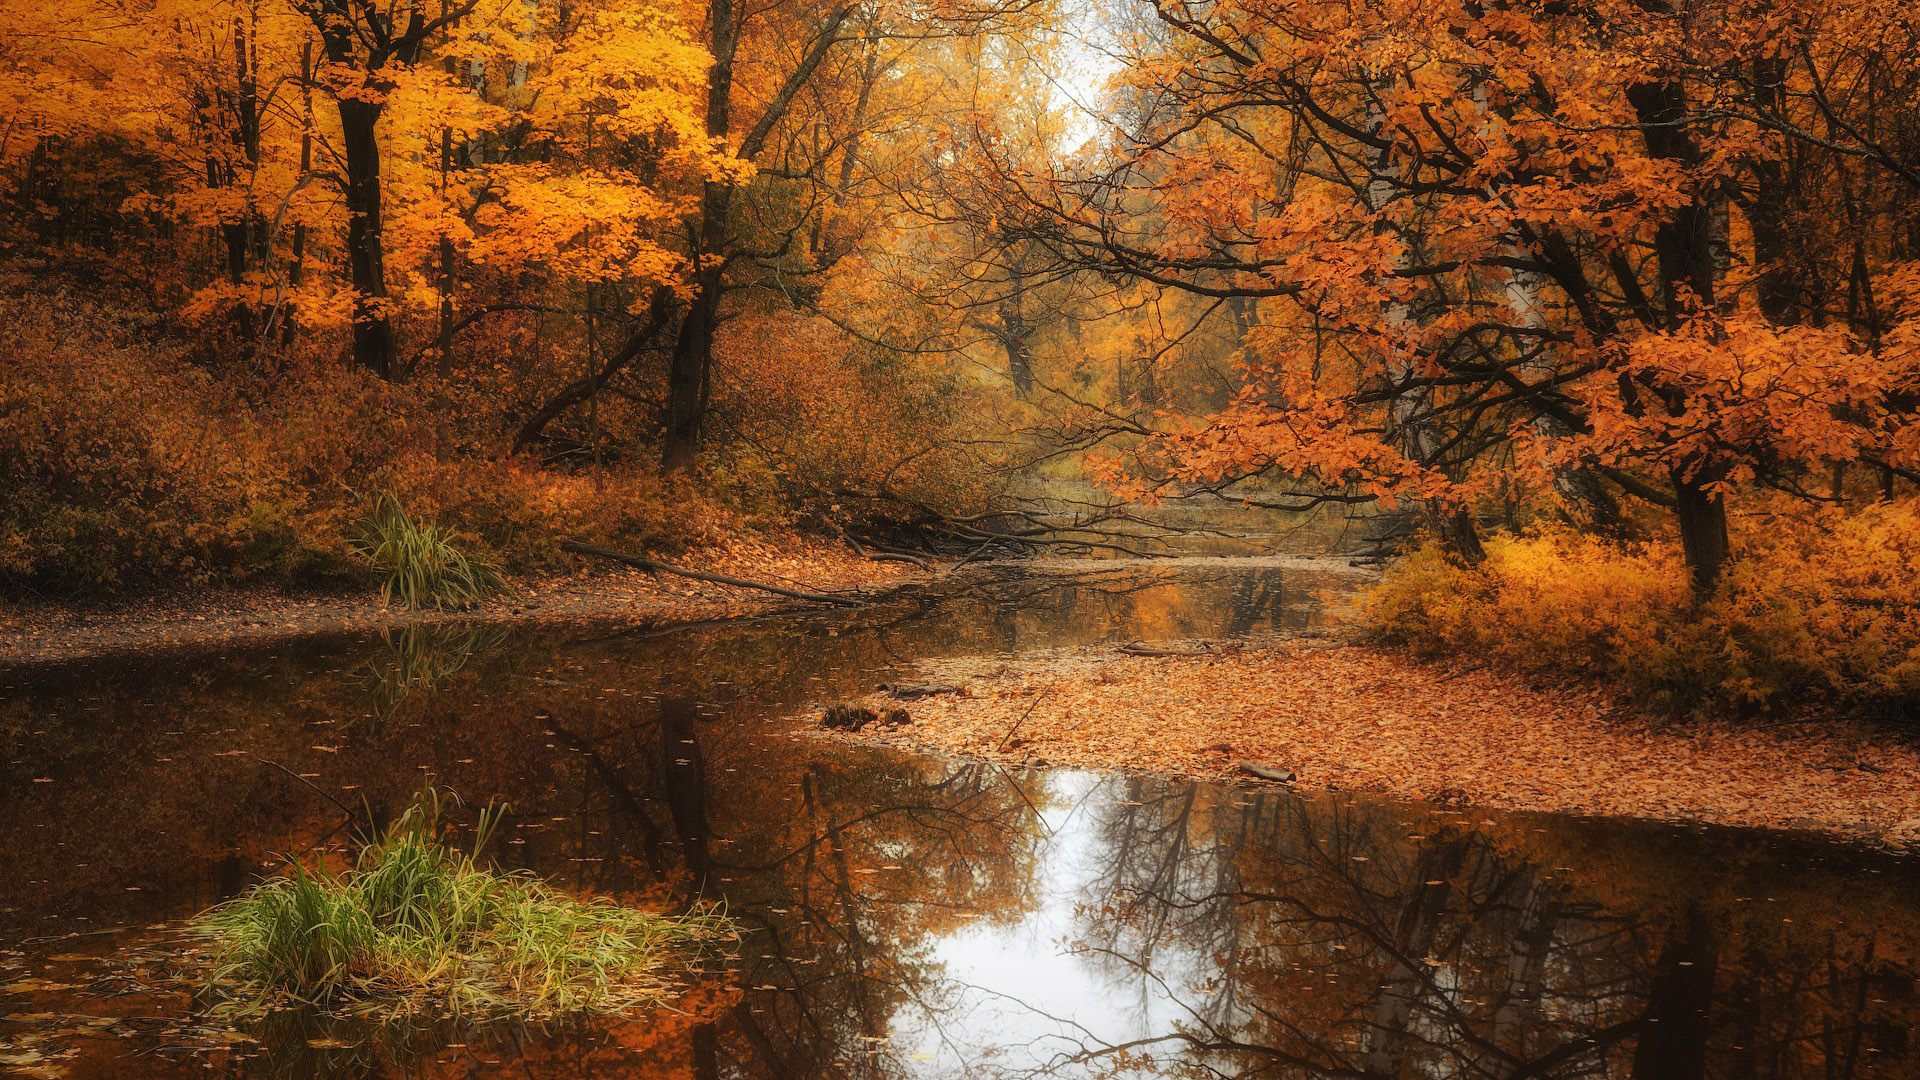 Shallow Stream In The Autumn Forest Nature Hd Wallpaper